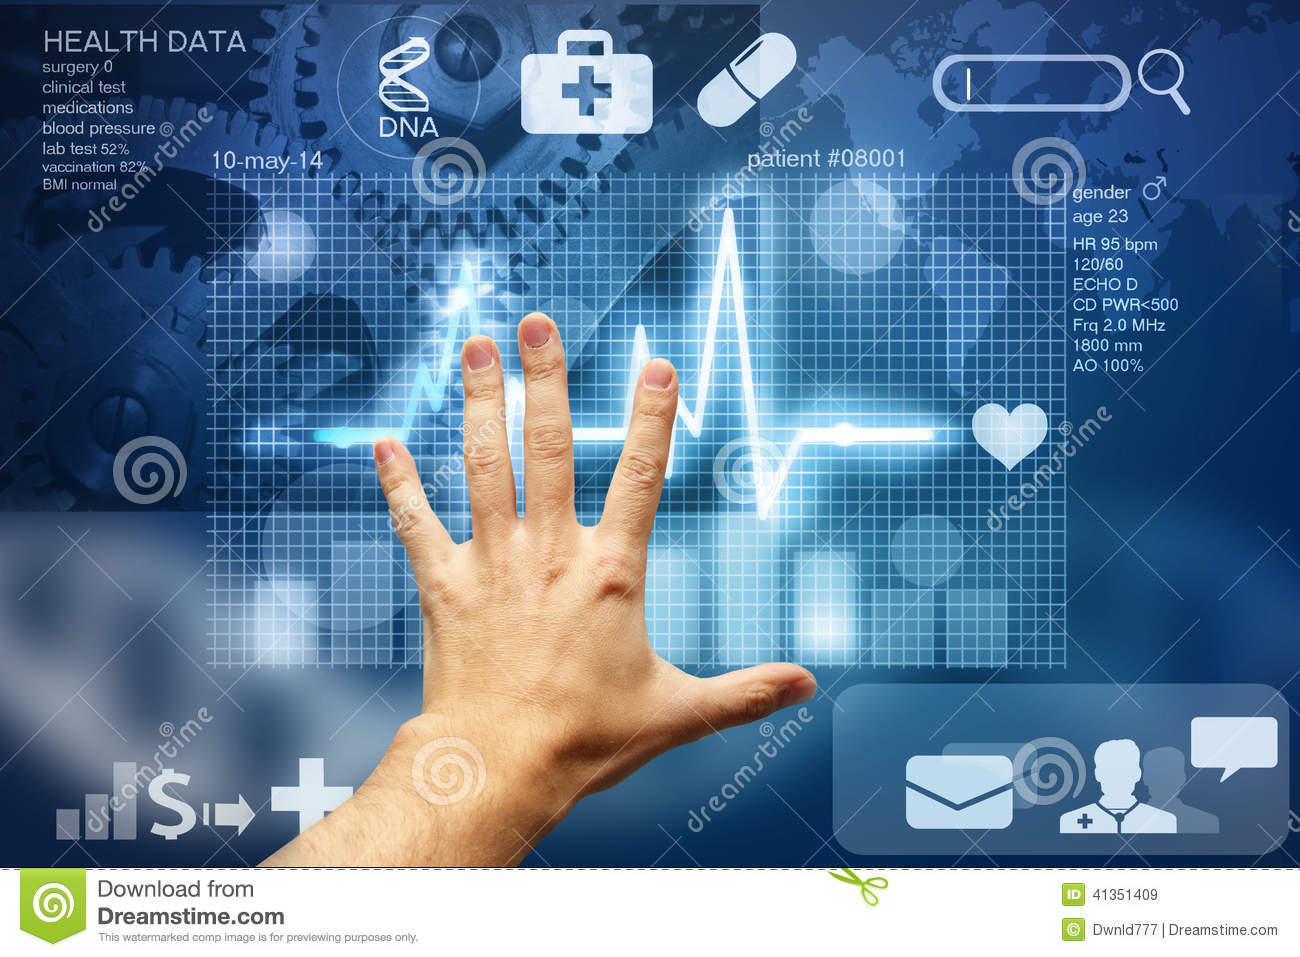 what are medical data Disclosing information to third parties for commercial purposes without consent  undermines trust, violates principles of informed consent and confidentiality.